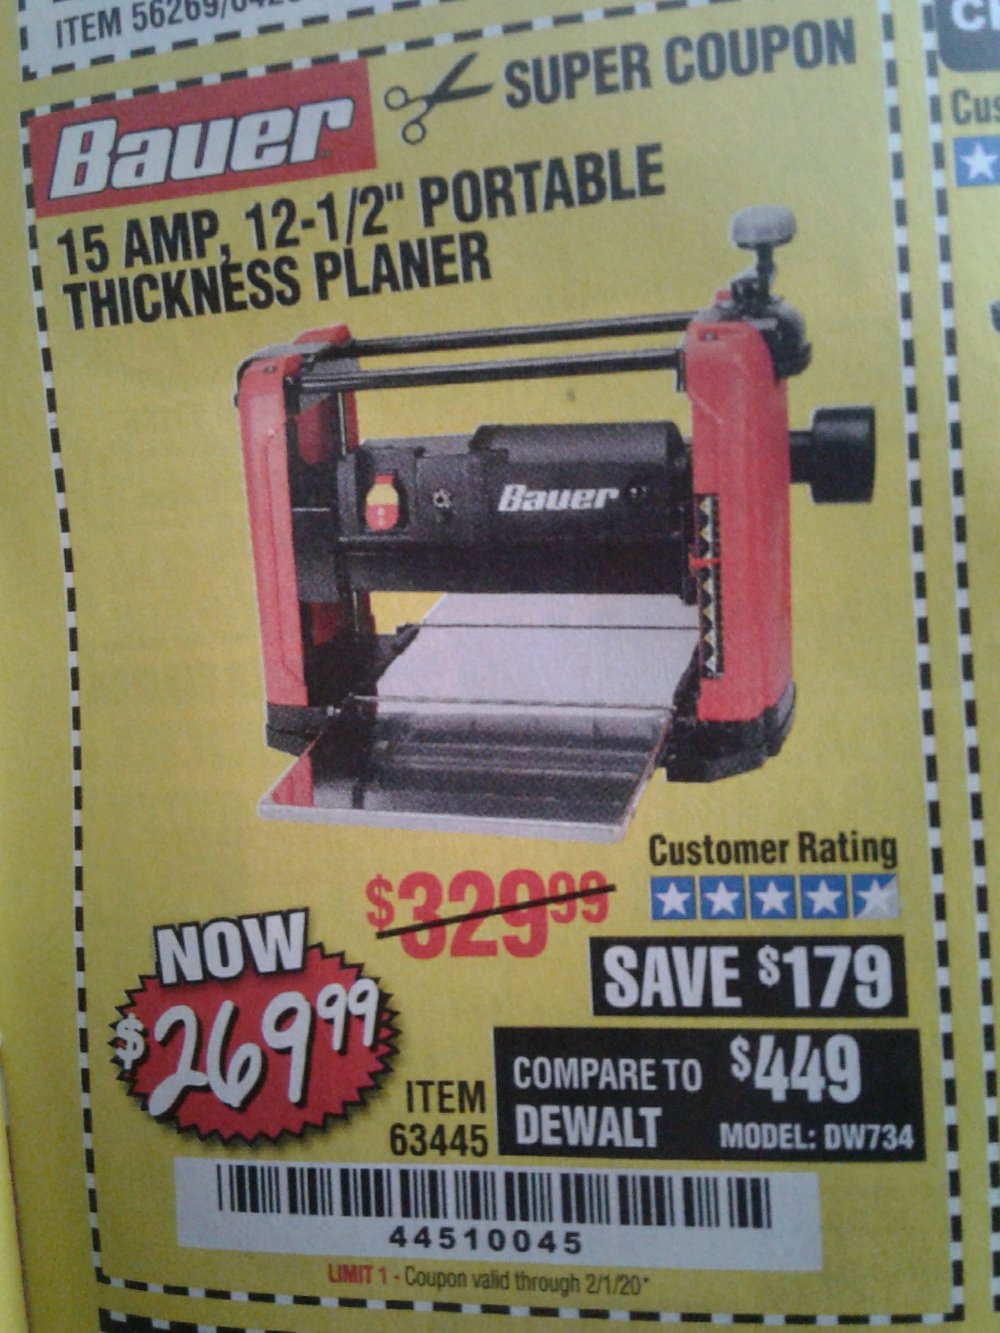 Harbor Freight Coupon, HF Coupons - Bauer 15 Amp 12 1/2